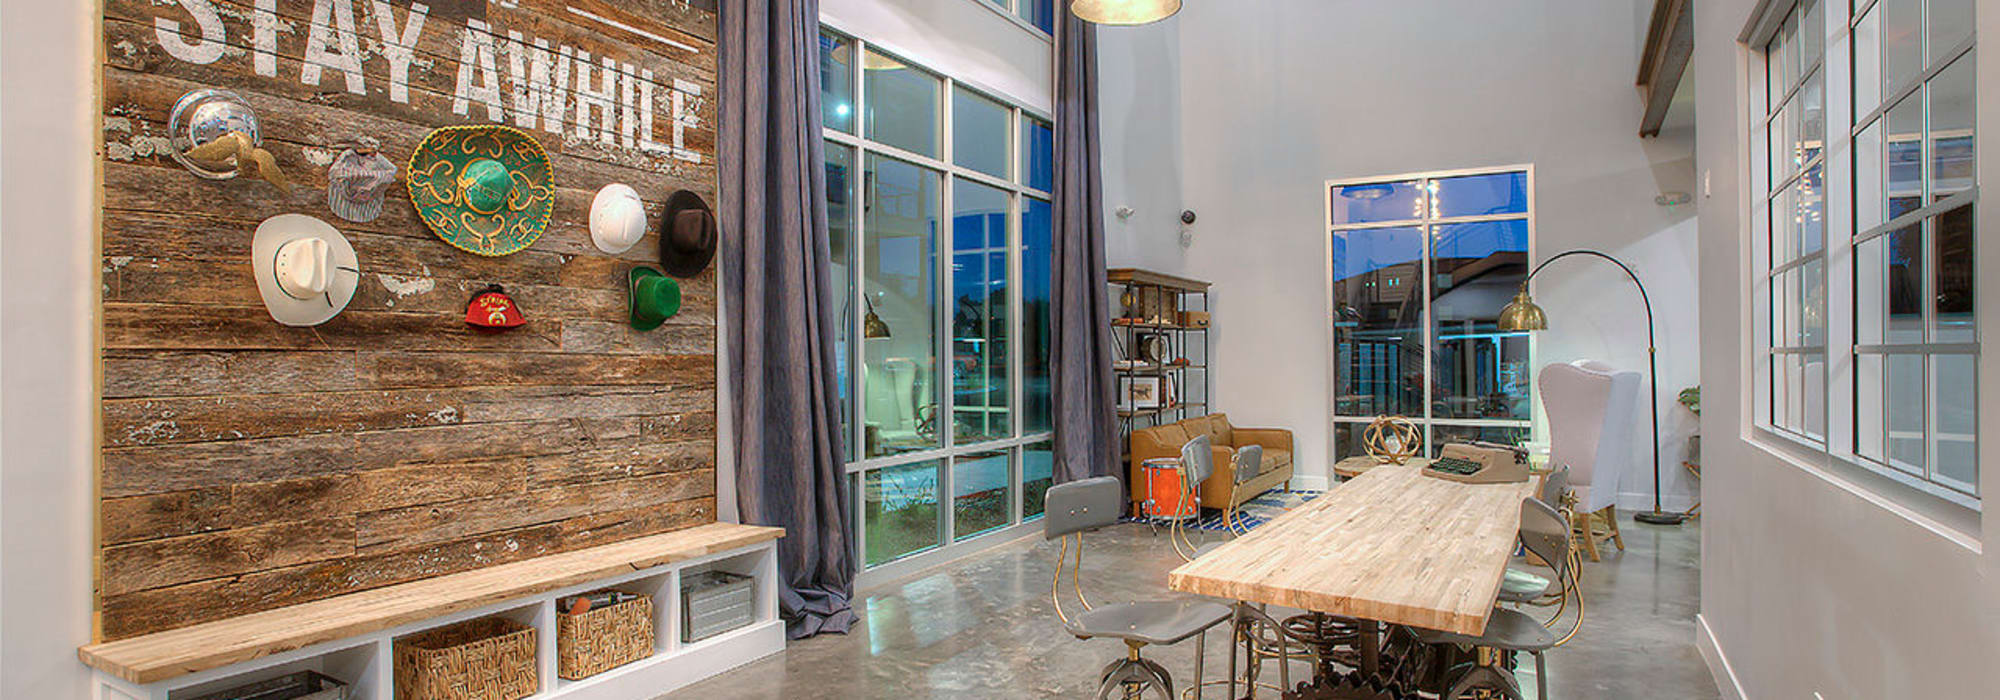 Rustic-modern lobby entrance interior at District Lofts in Gilbert, Arizona